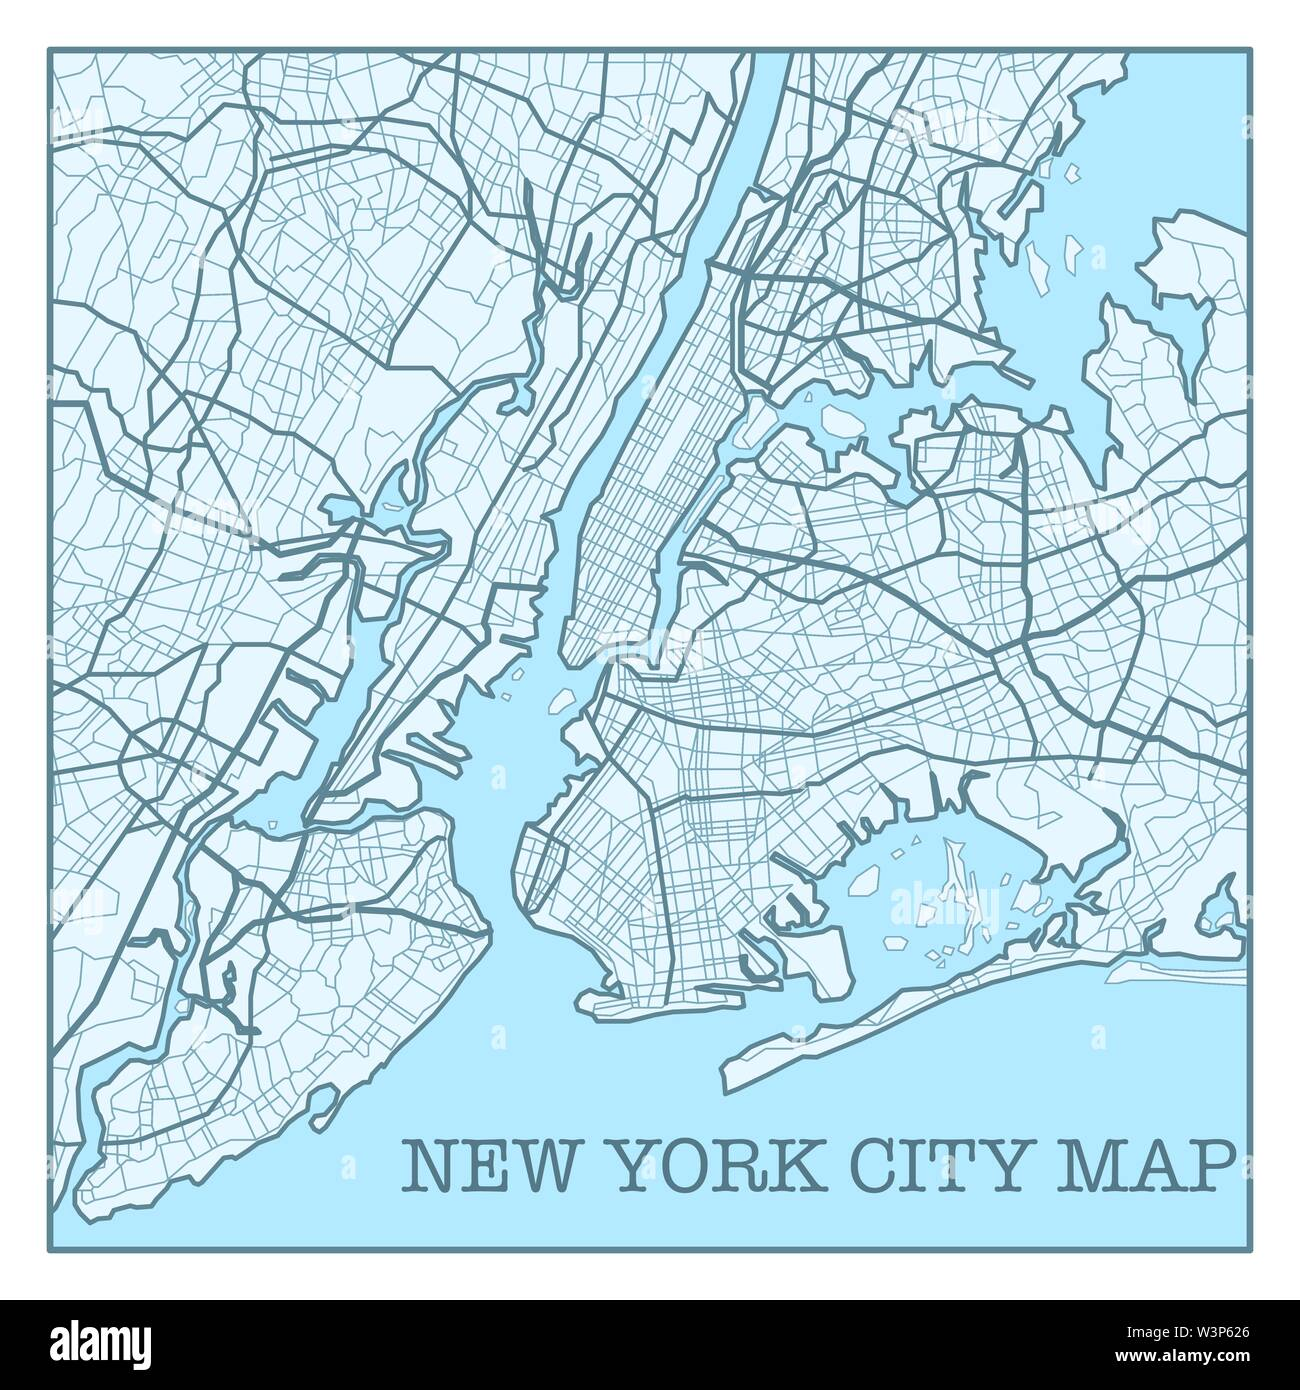 New York city map poster blue colors - Stock Vector